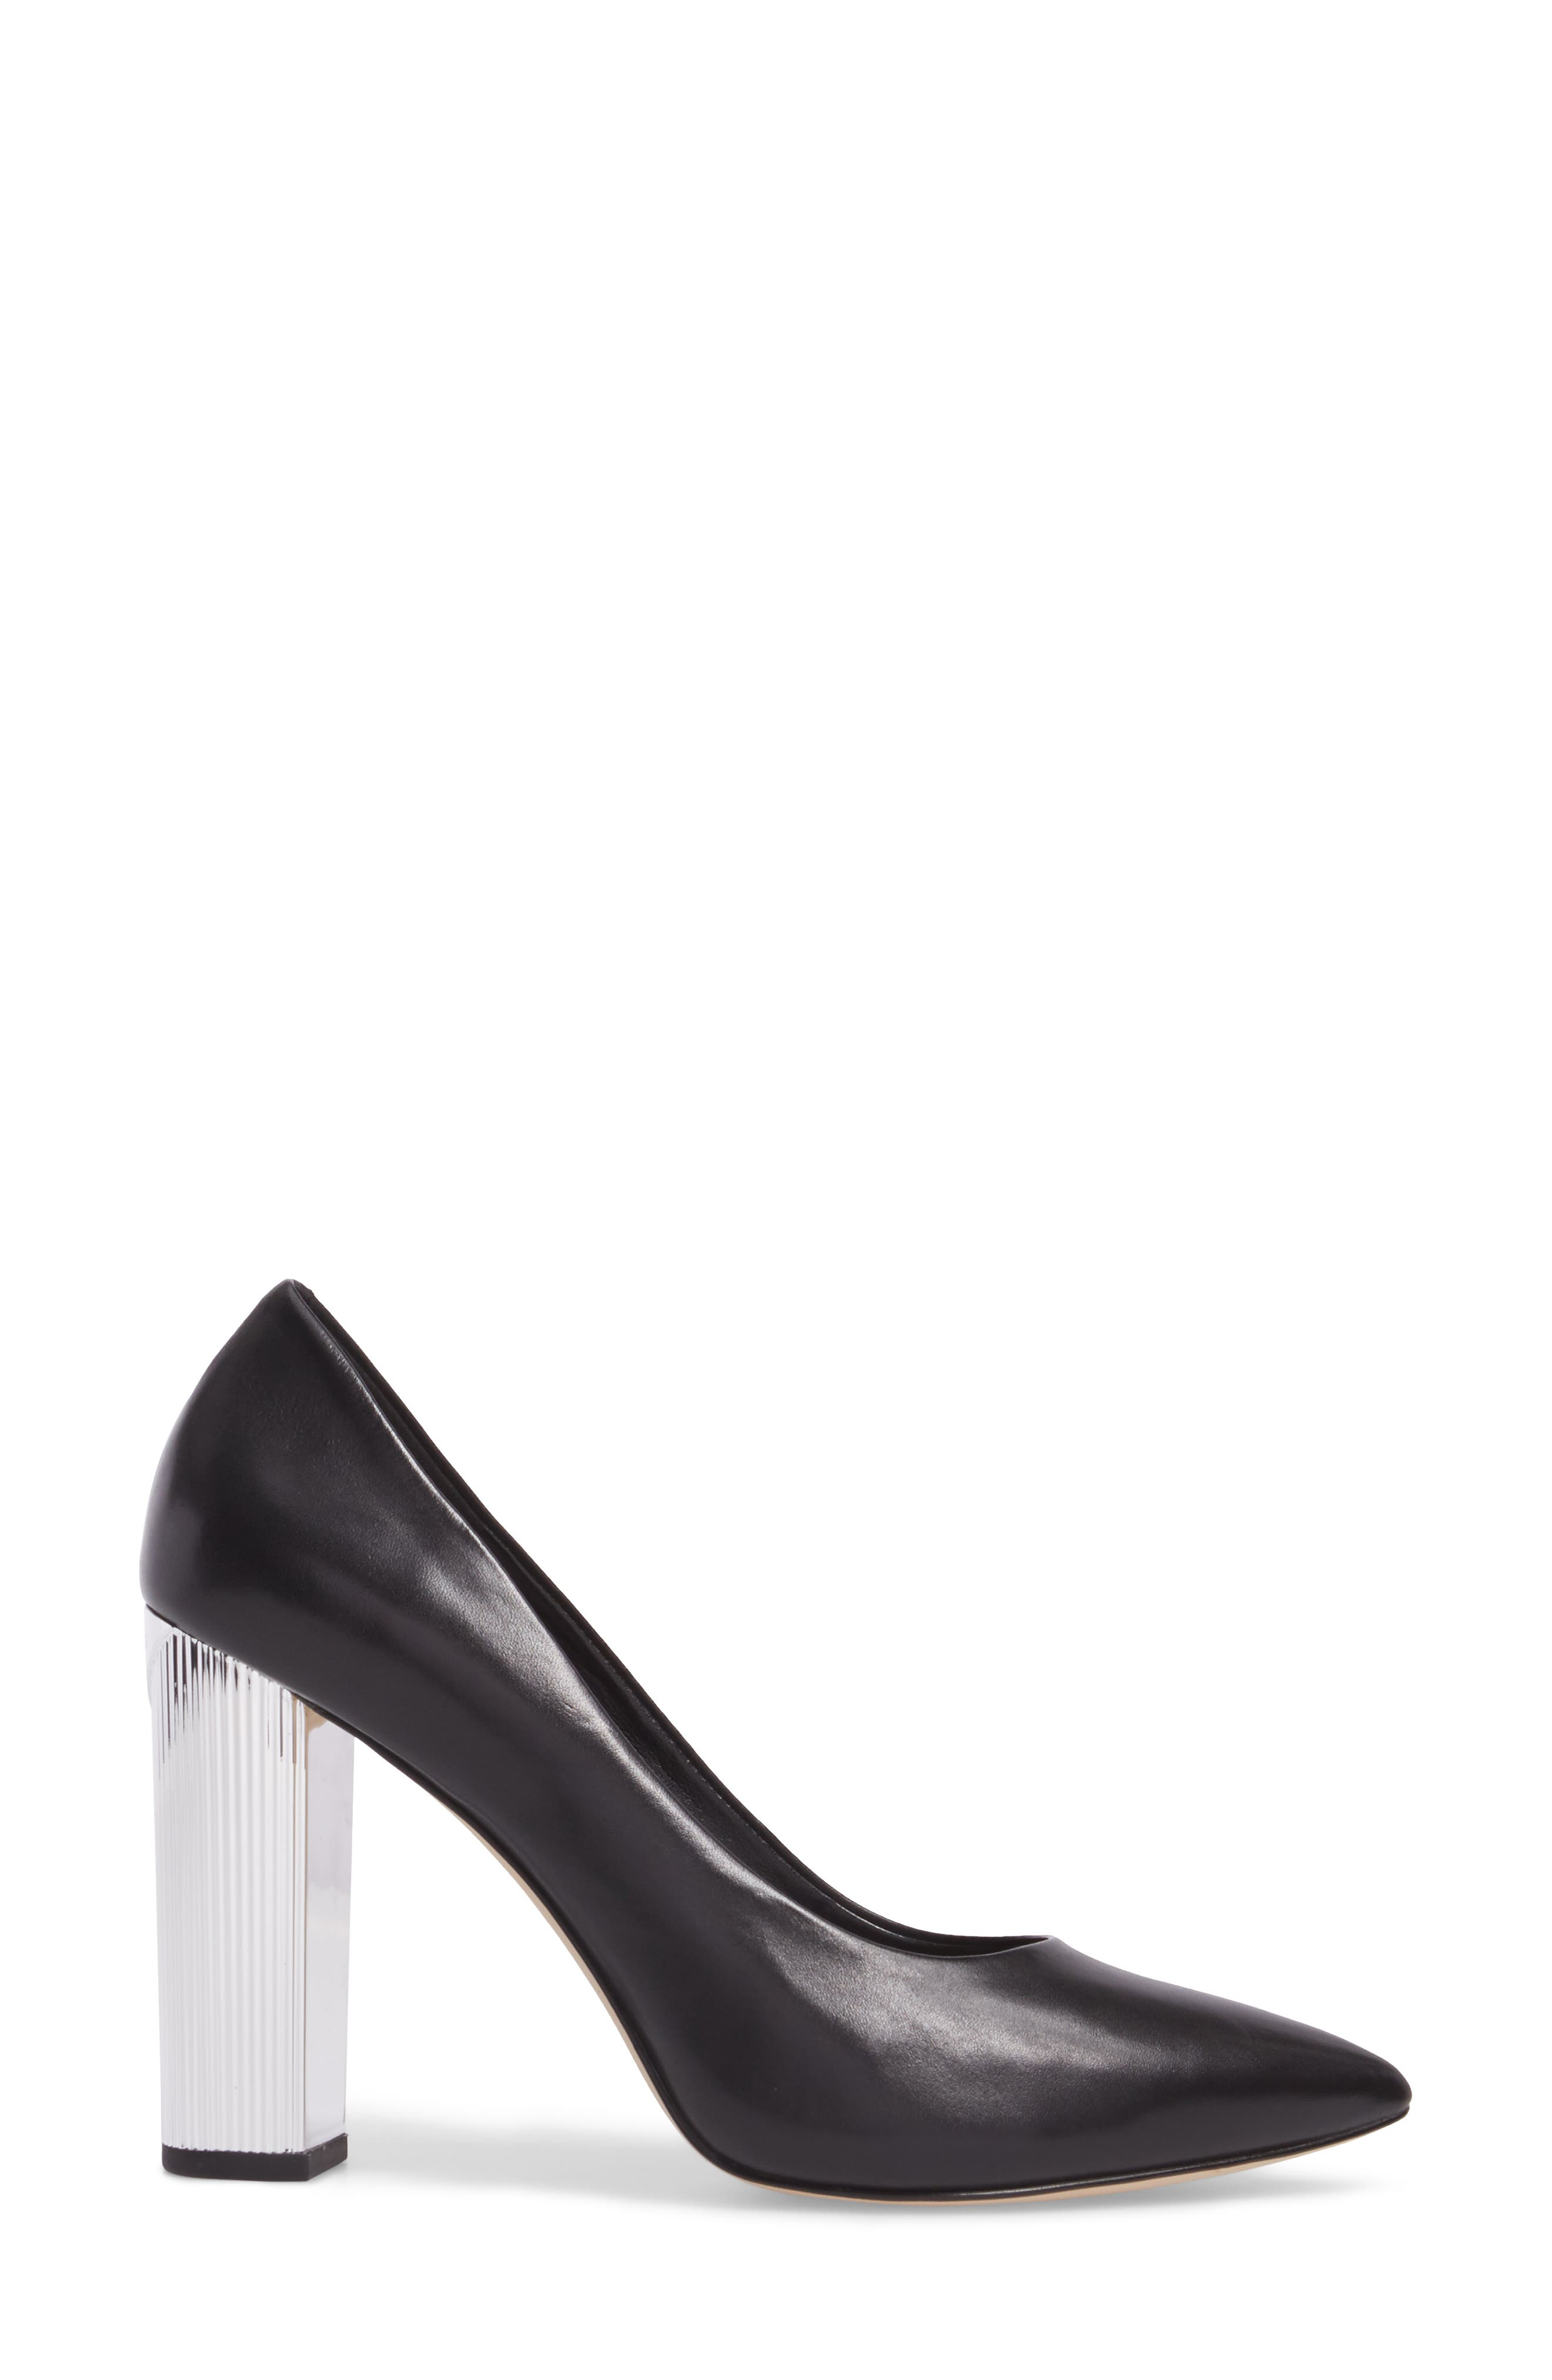 Paloma Metallic Heel Pump,                             Alternate thumbnail 3, color,                             001